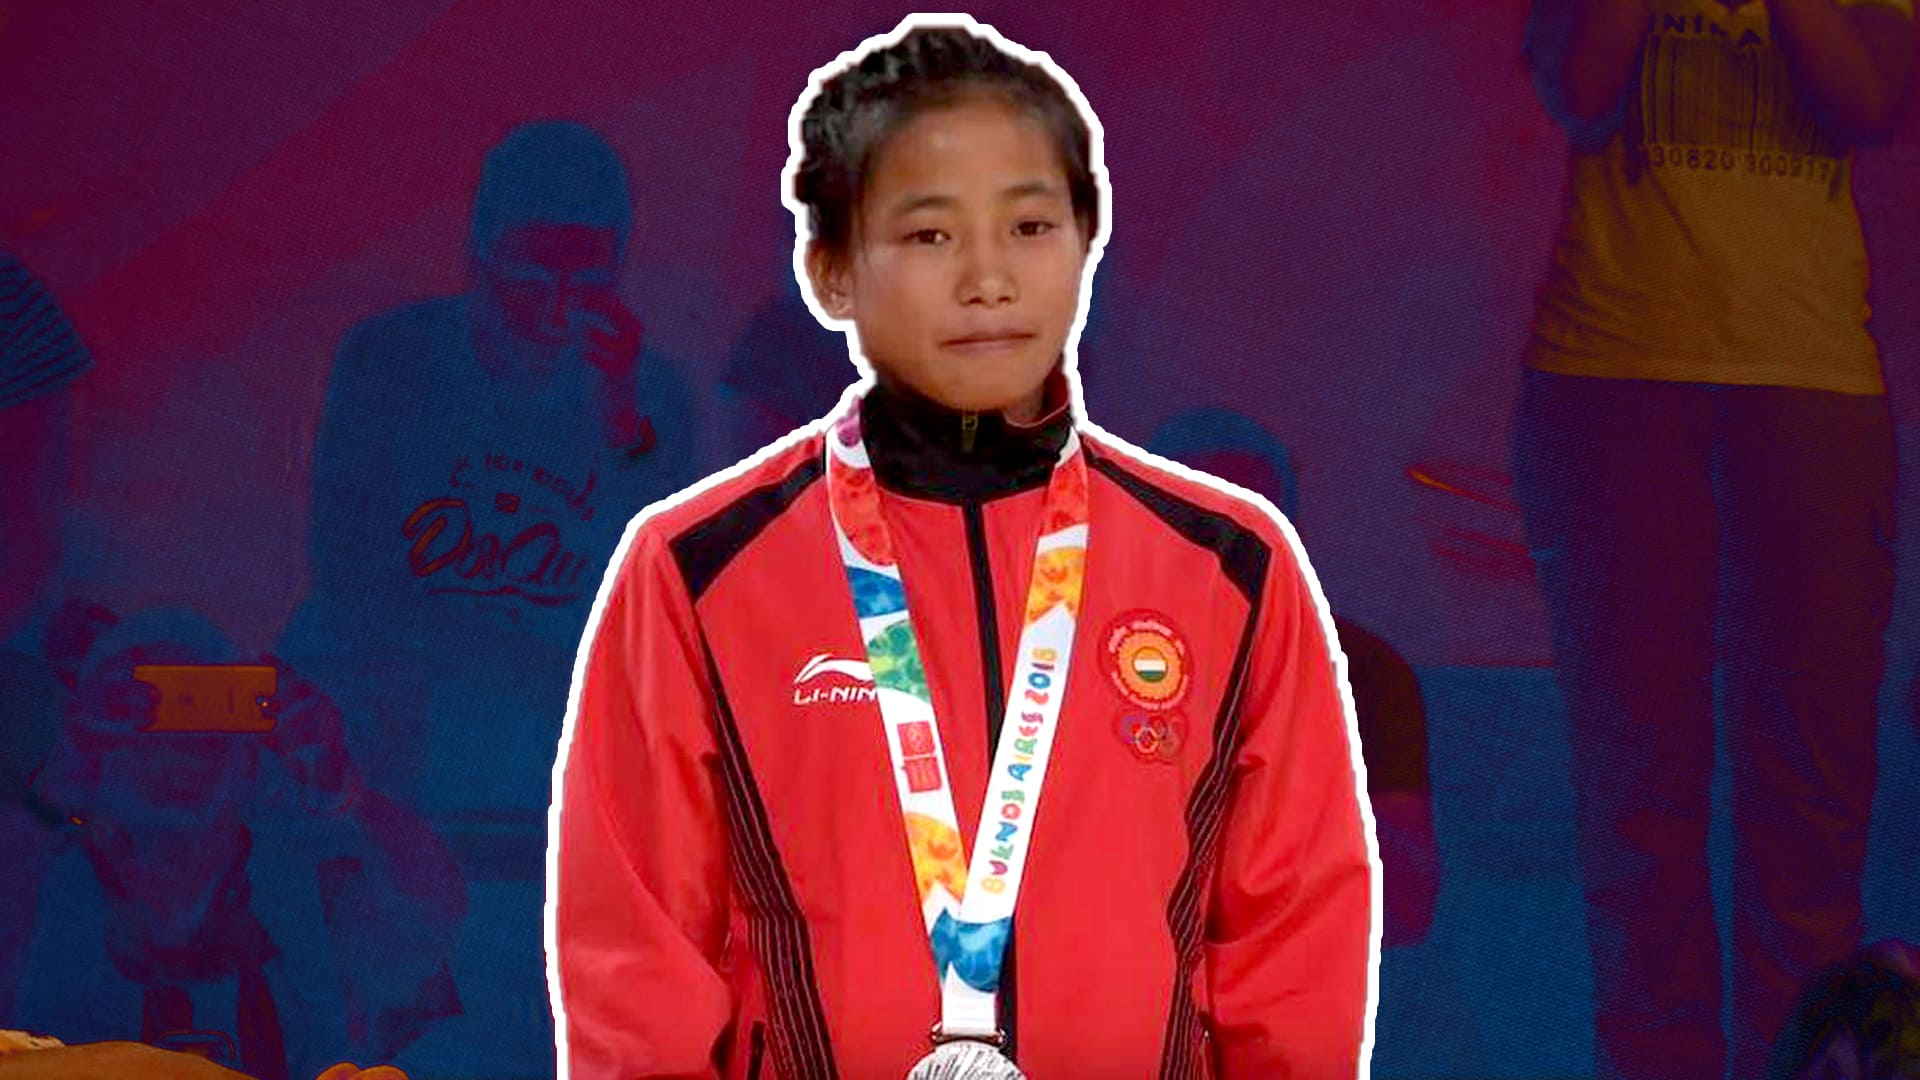 Youth Olympics 2018: Tushar Mane, Tababi Devi win silver medals as India open account